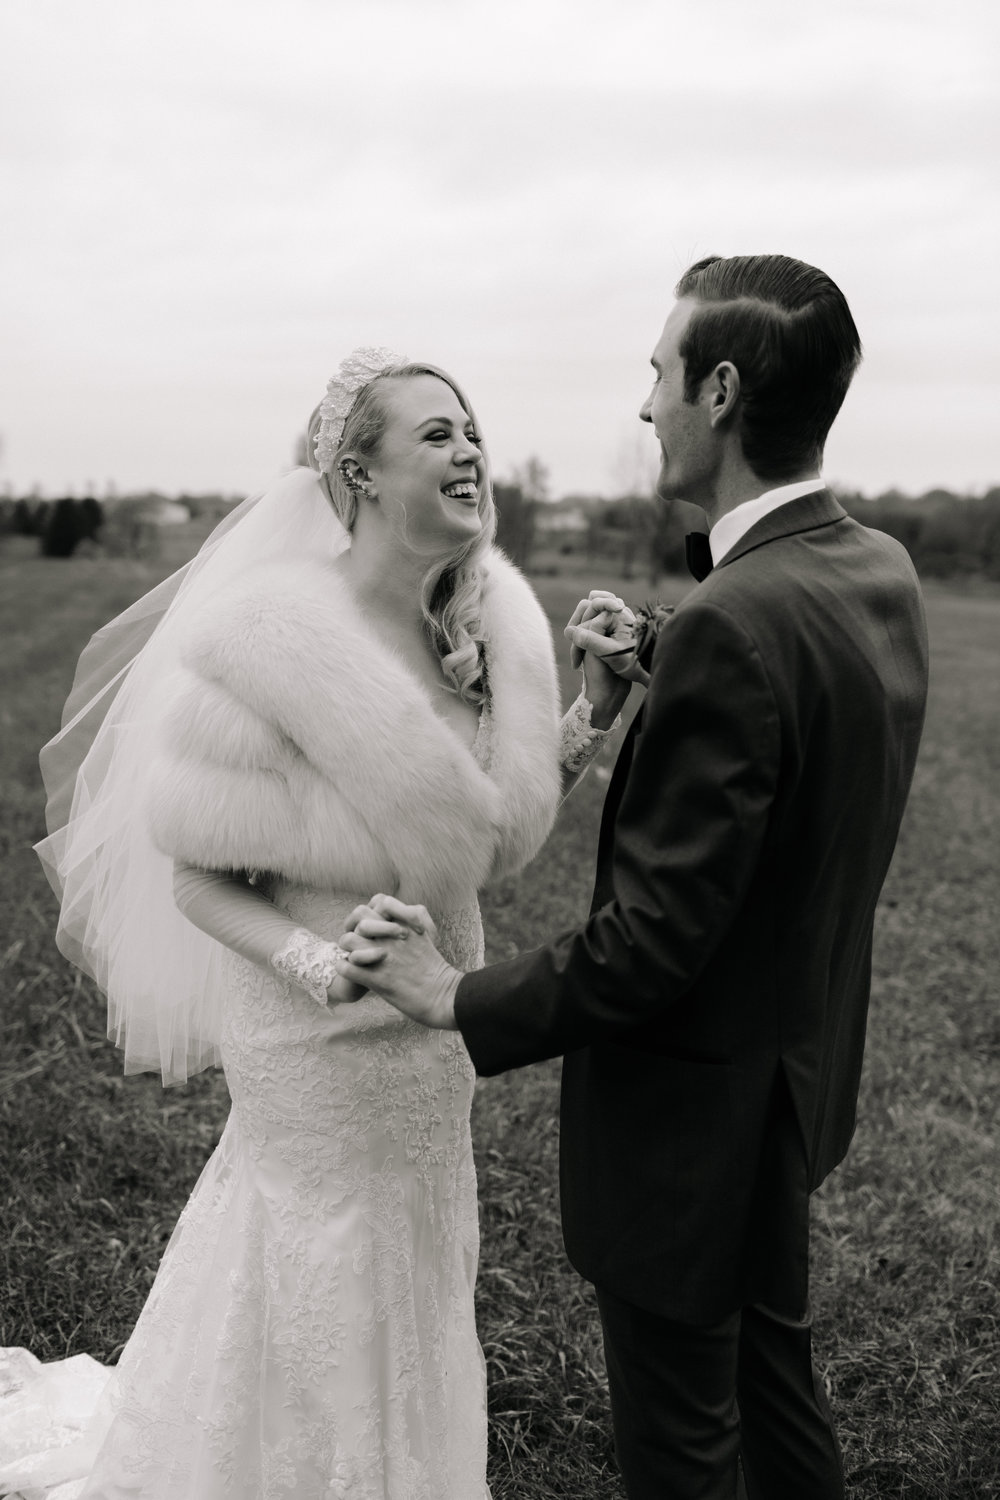 Northfork Farm Wedding